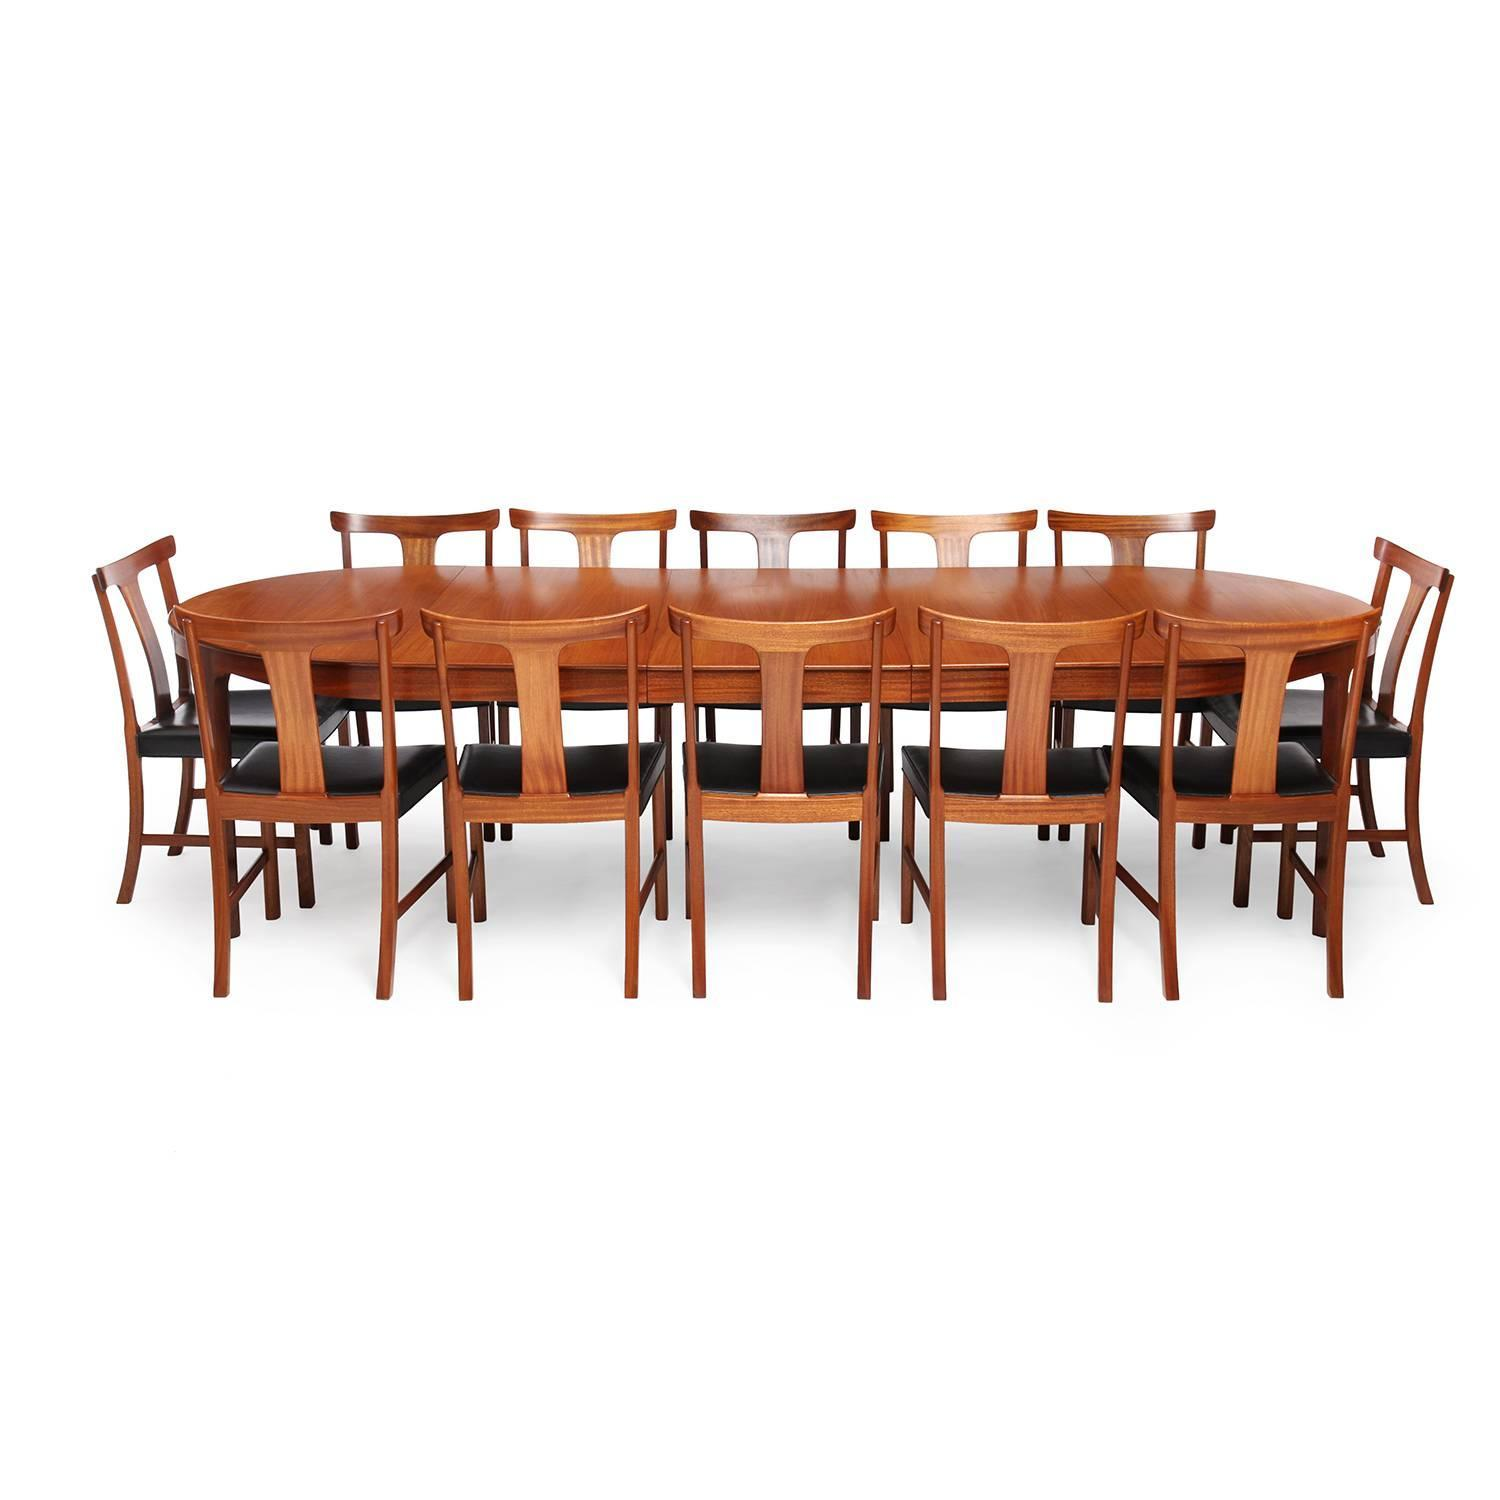 Mahogany Dining Room Table With Scalloped